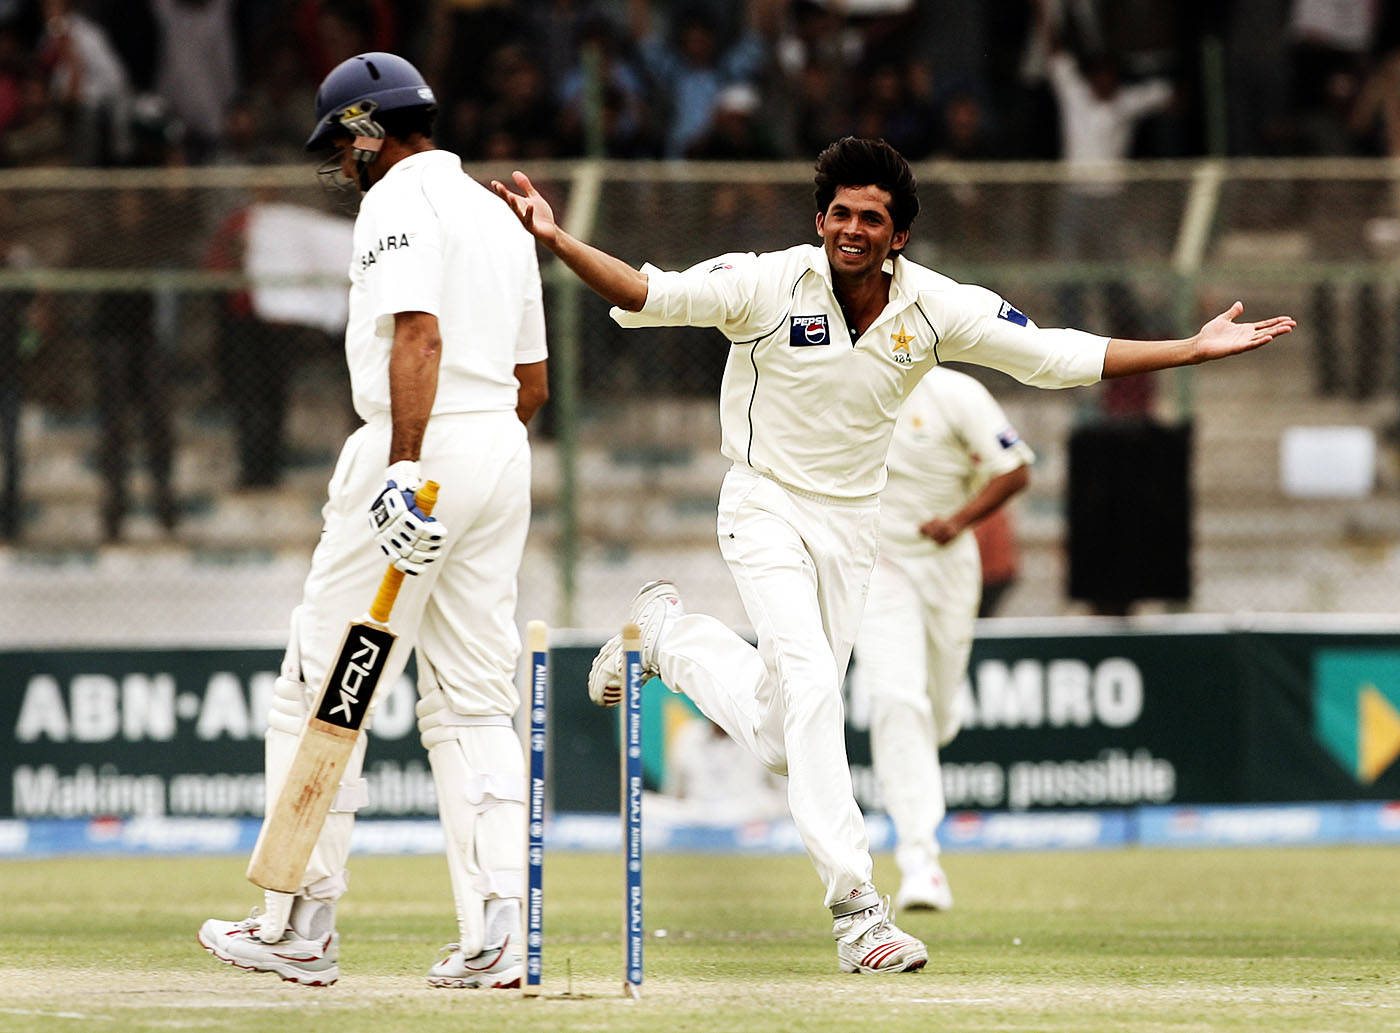 Mohammad Asif bowled VVS Laxman twice in the Test